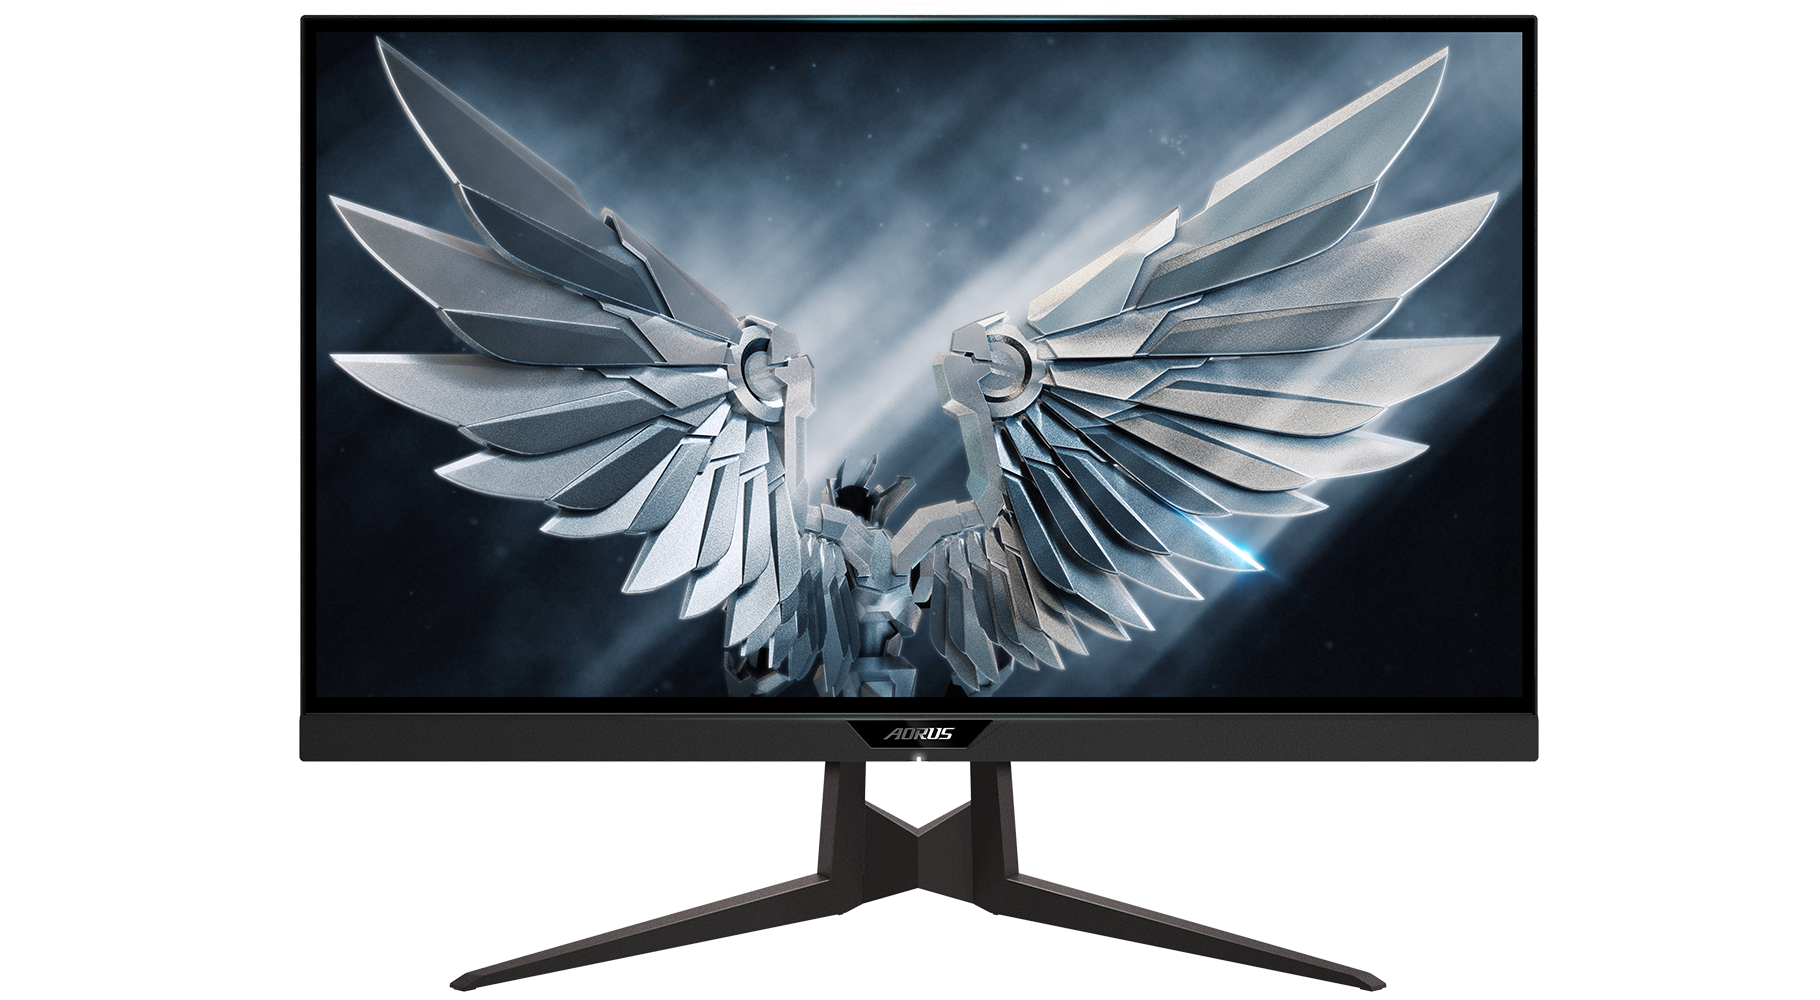 Media asset in full size related to 3dfxzone.it news item entitled as follows: GIGABYTE introduce il gaming monitor AORUS FI27Q-P: 2K a 165Hz con HBR3   Image Name: news30637_AORUS-FI27Q-P_2.png